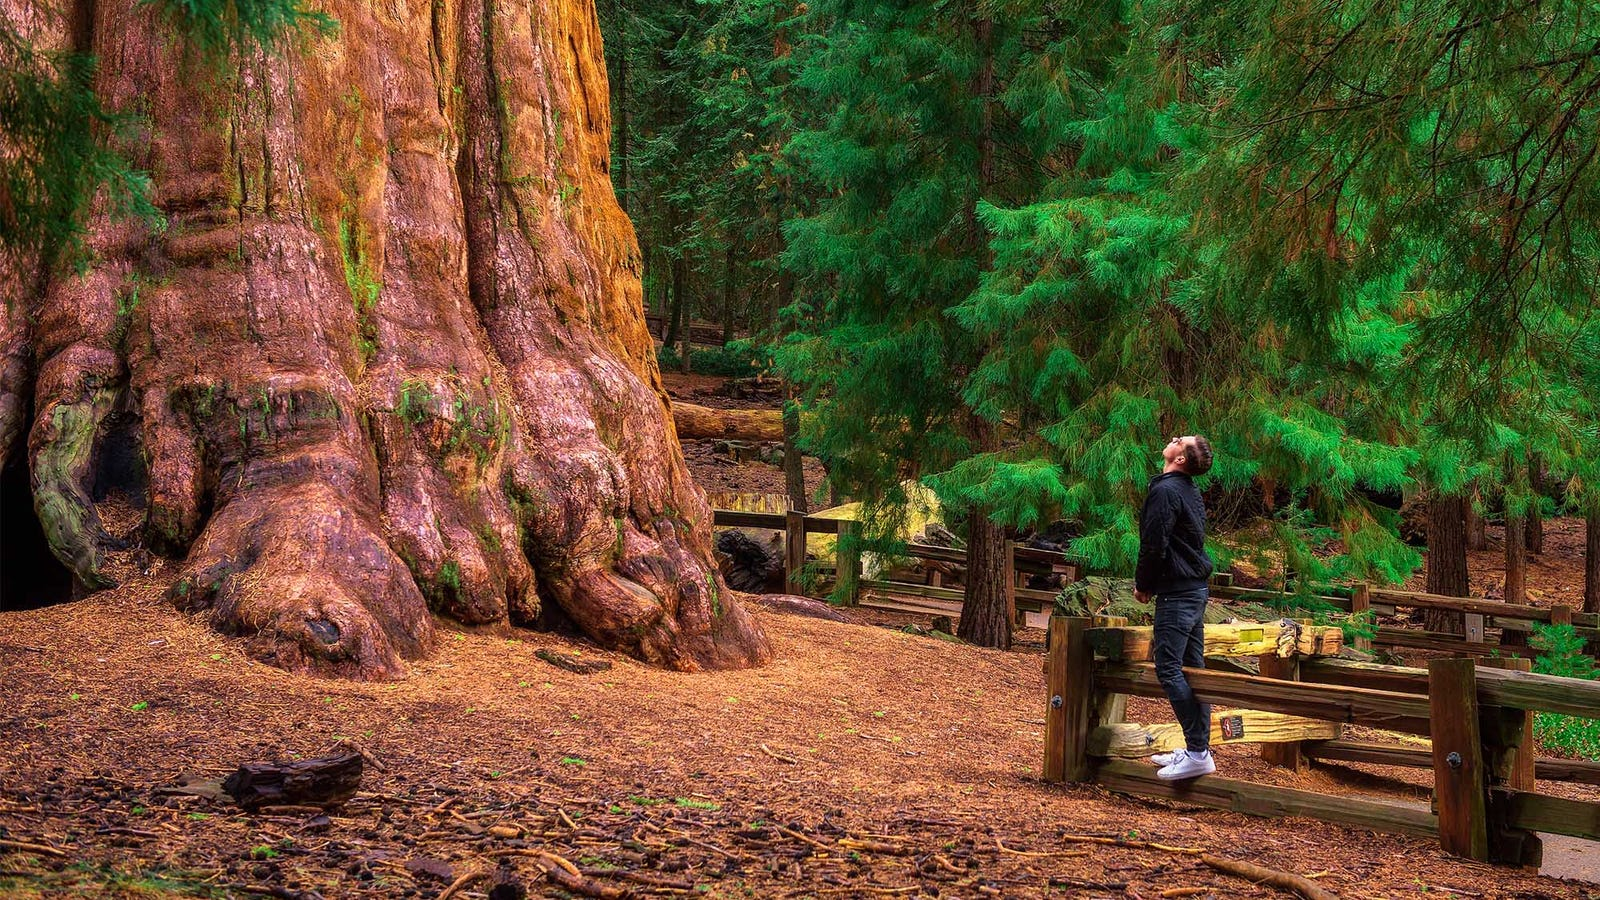 Man Guessing He's Stared At Giant Sequoia Long Enough To Appreciate It